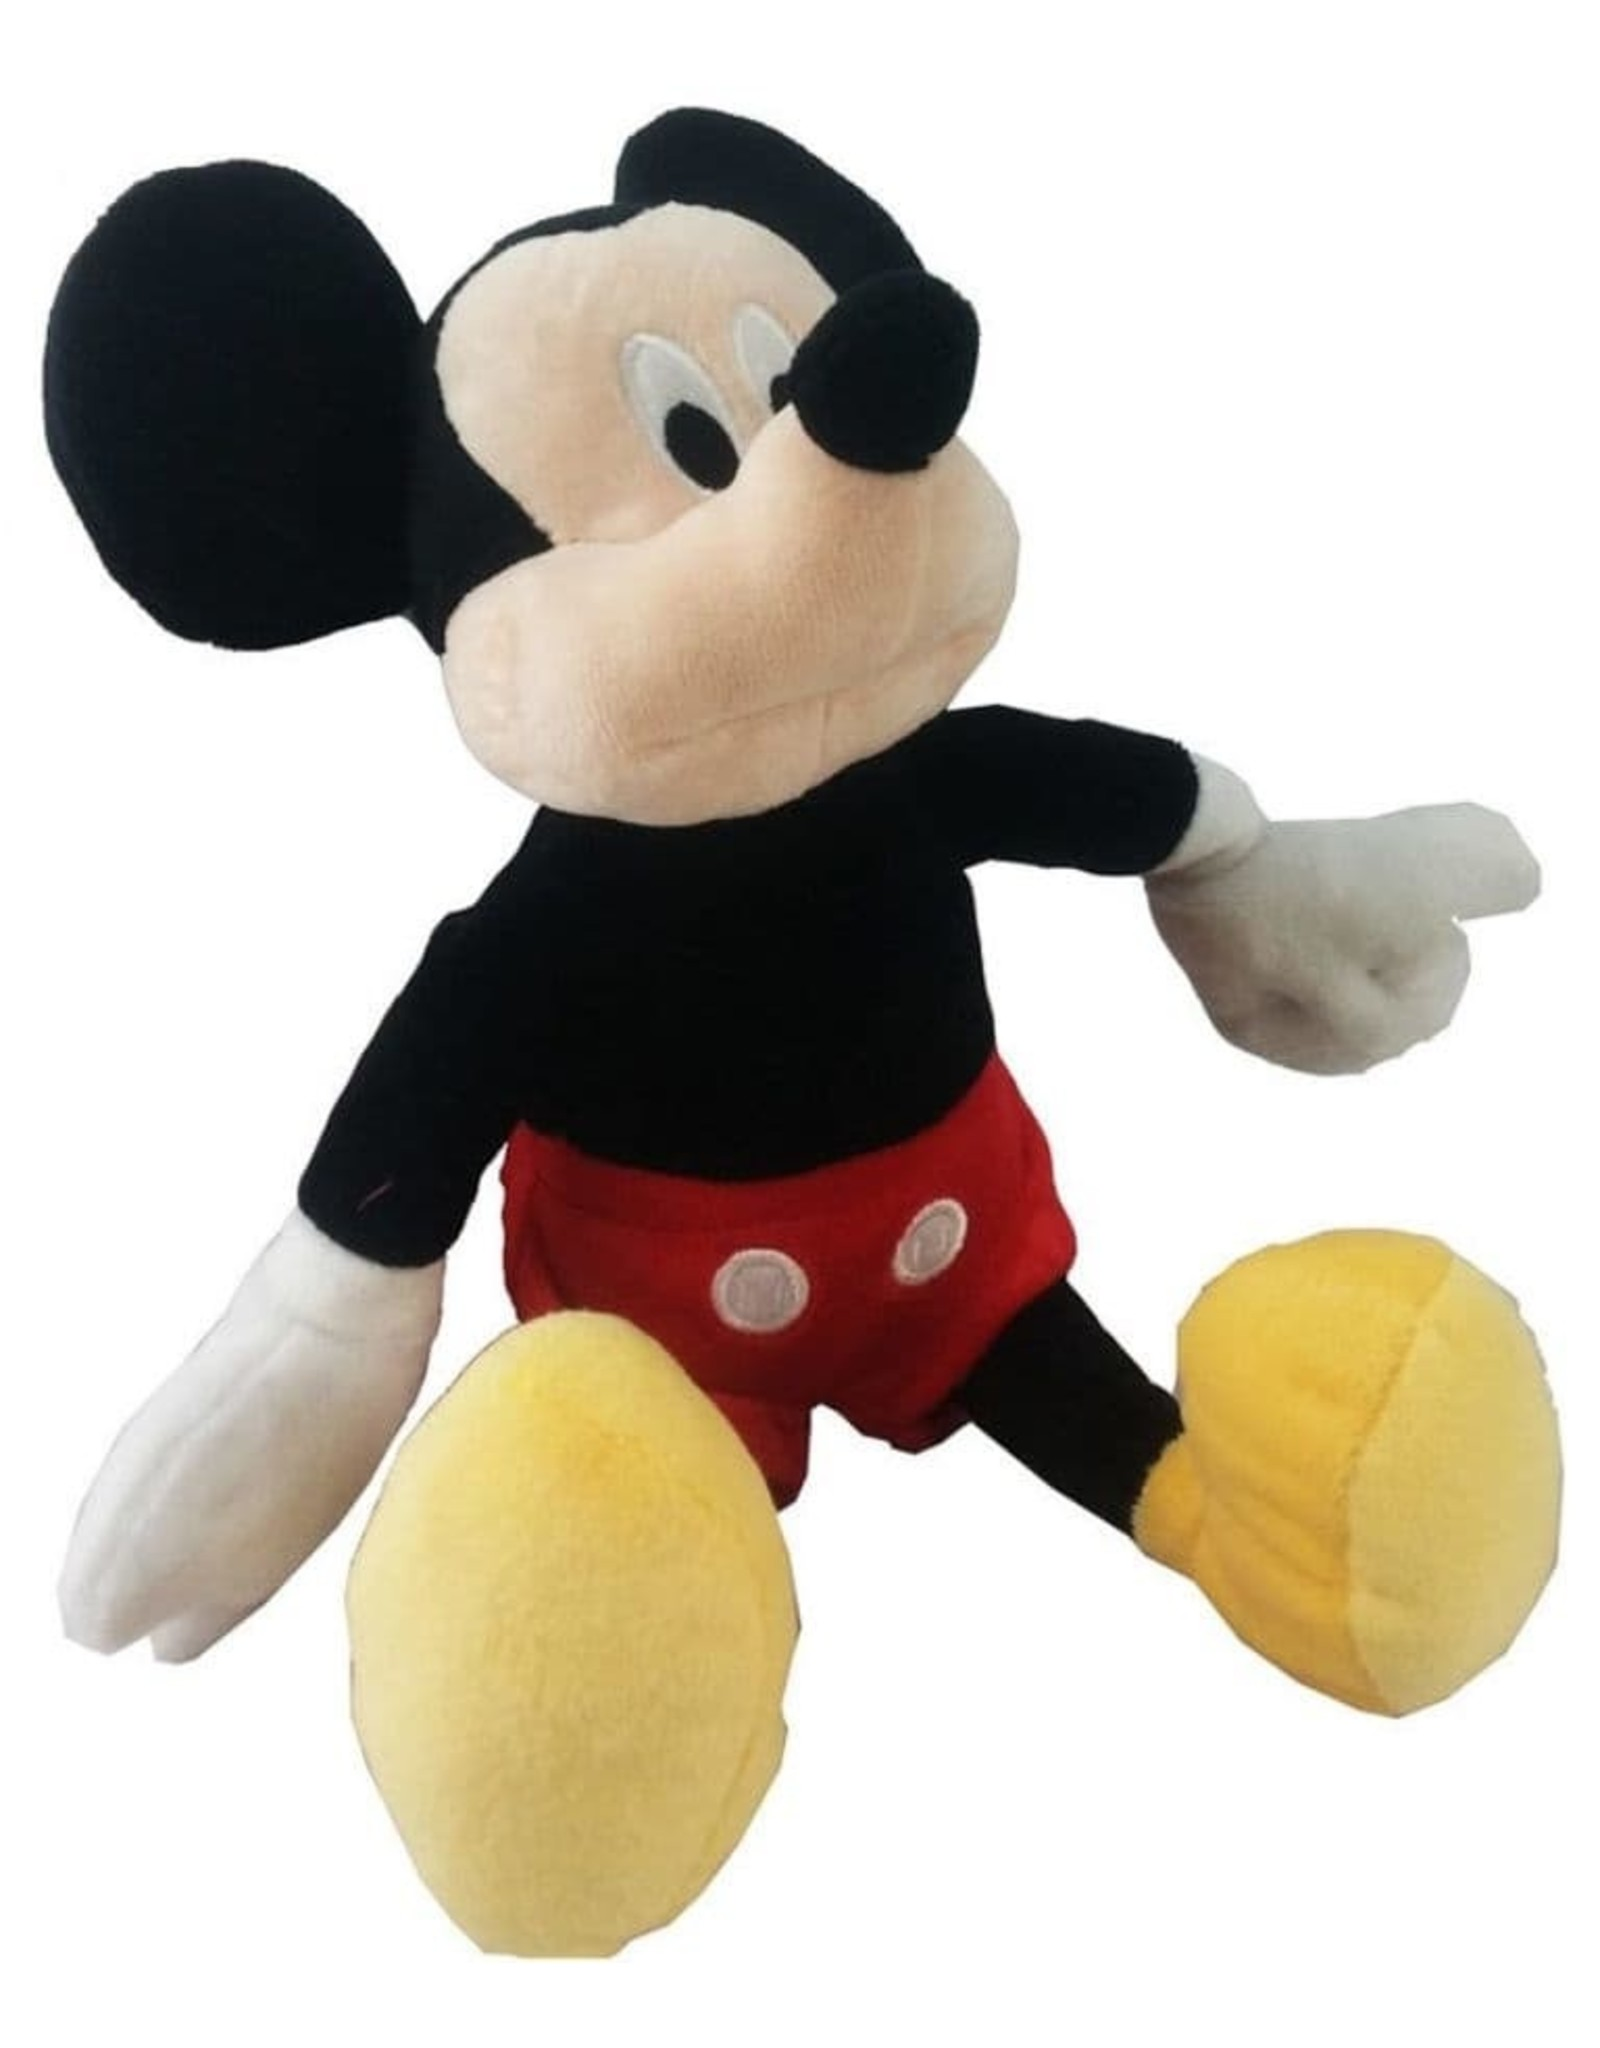 Disney Merchandise plush and figurines - Disney plush Mickey Mouse 28cm